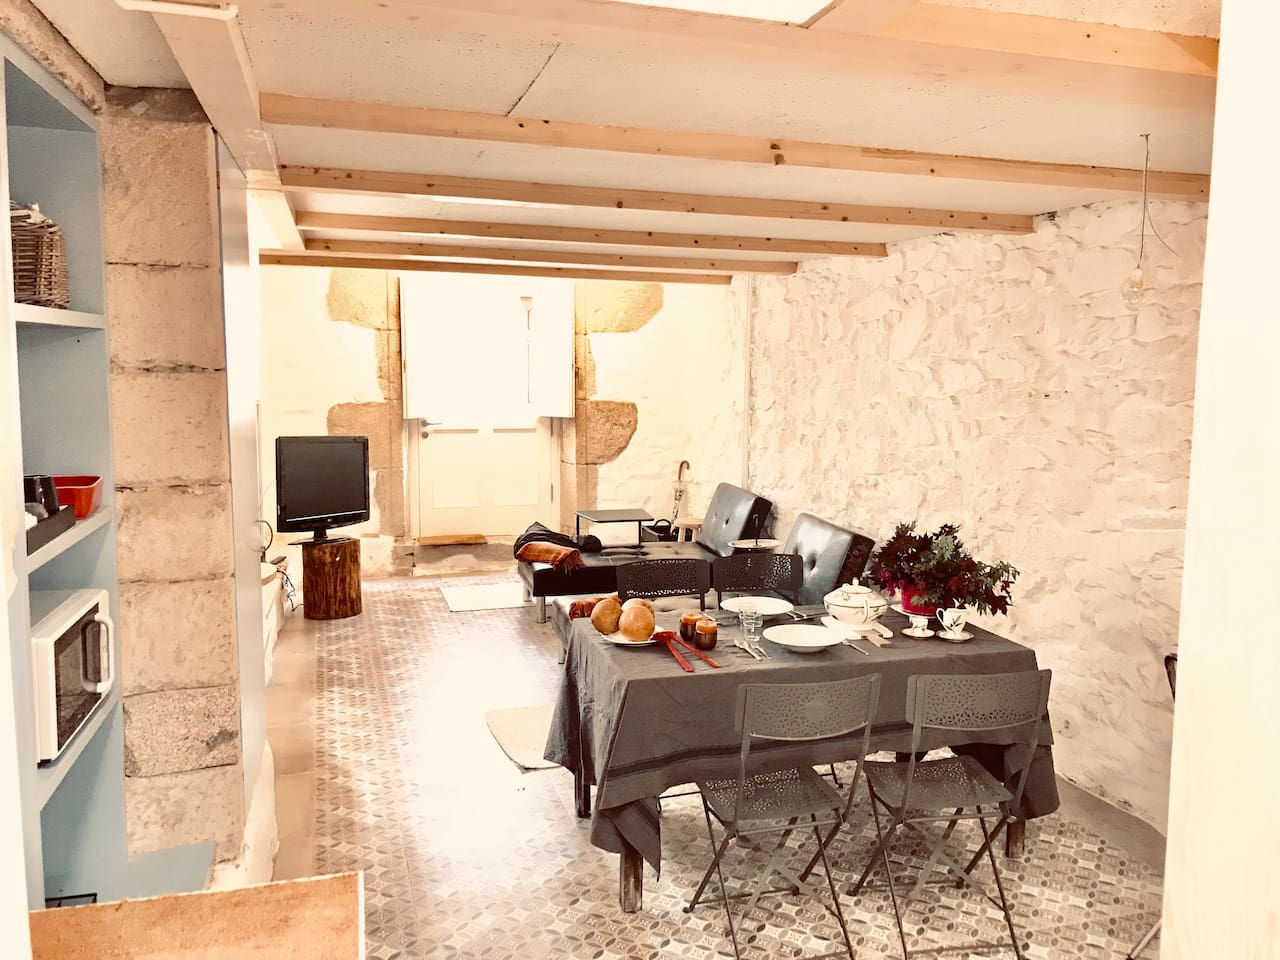 Enjoy the Old Town in a full renovated Duplex